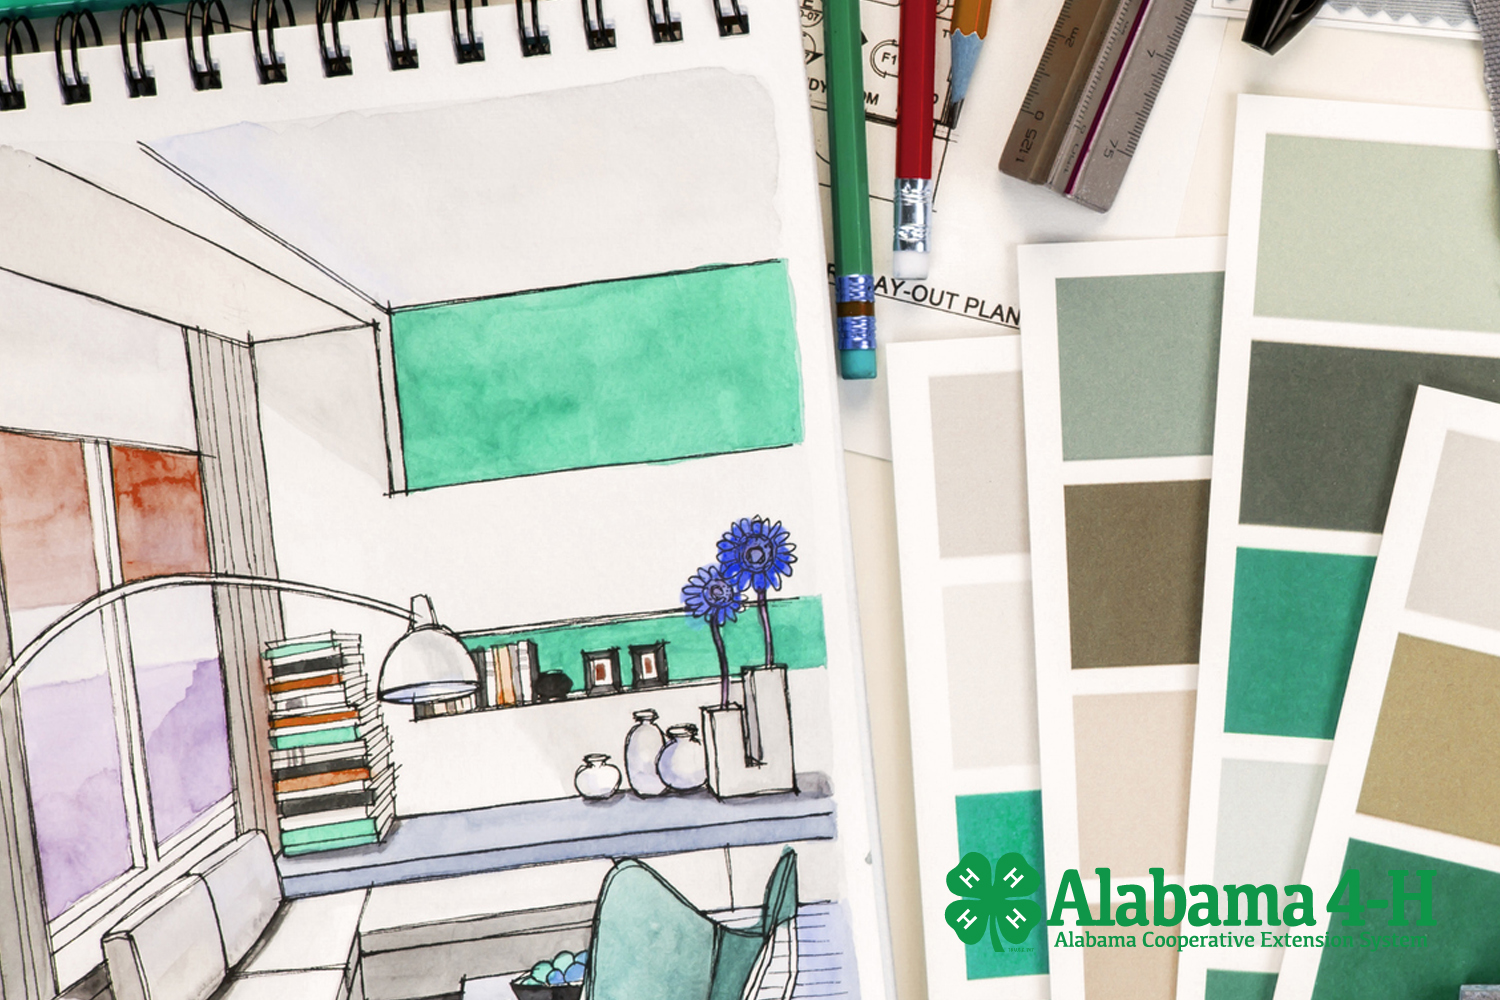 Alabama 4-H Interior Design; art sketch and fabric swatches